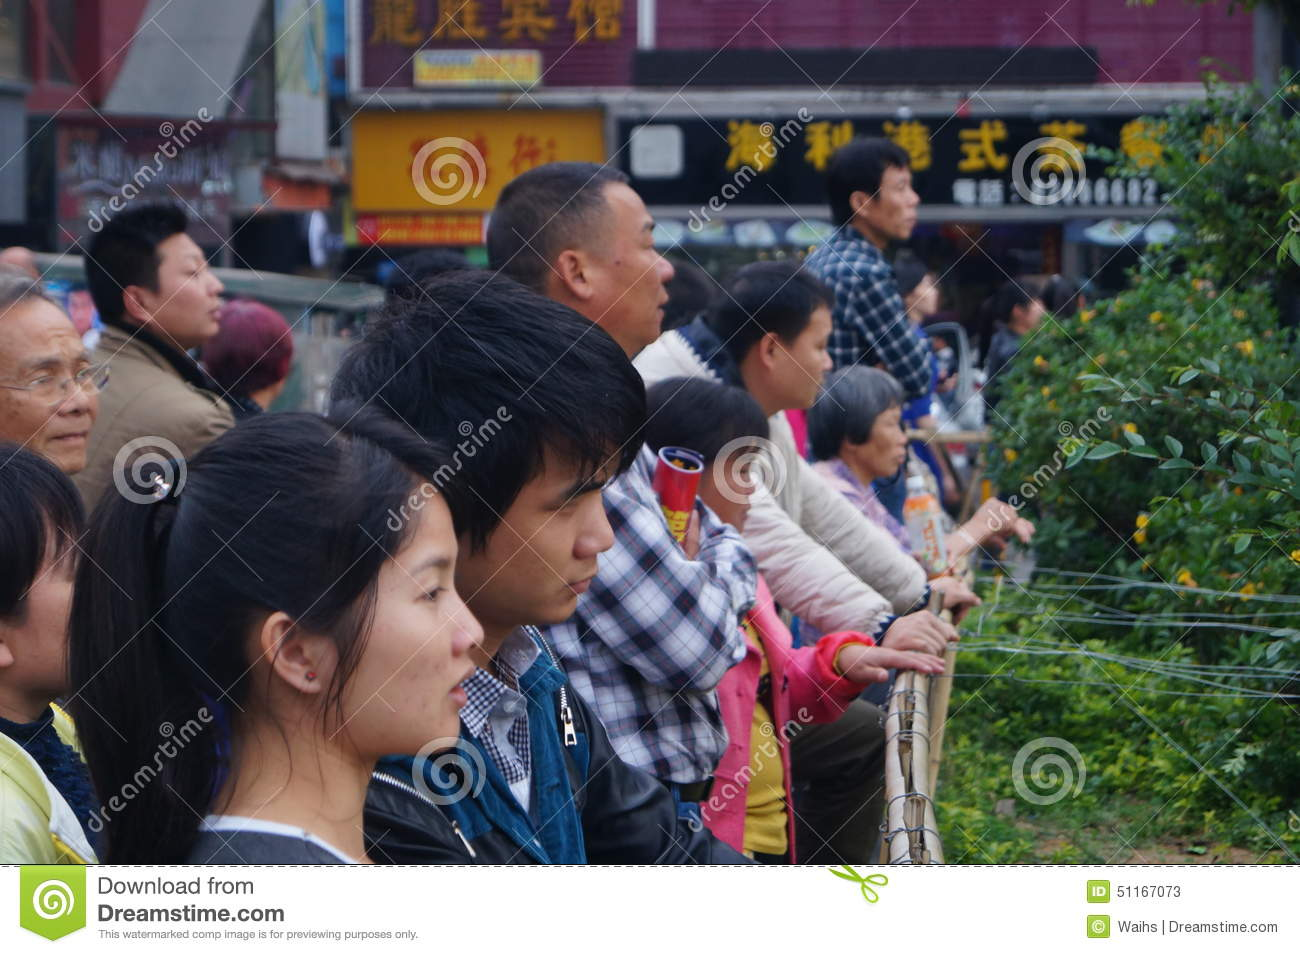 Shenzhen, China: people with disabilities in the singing and begging